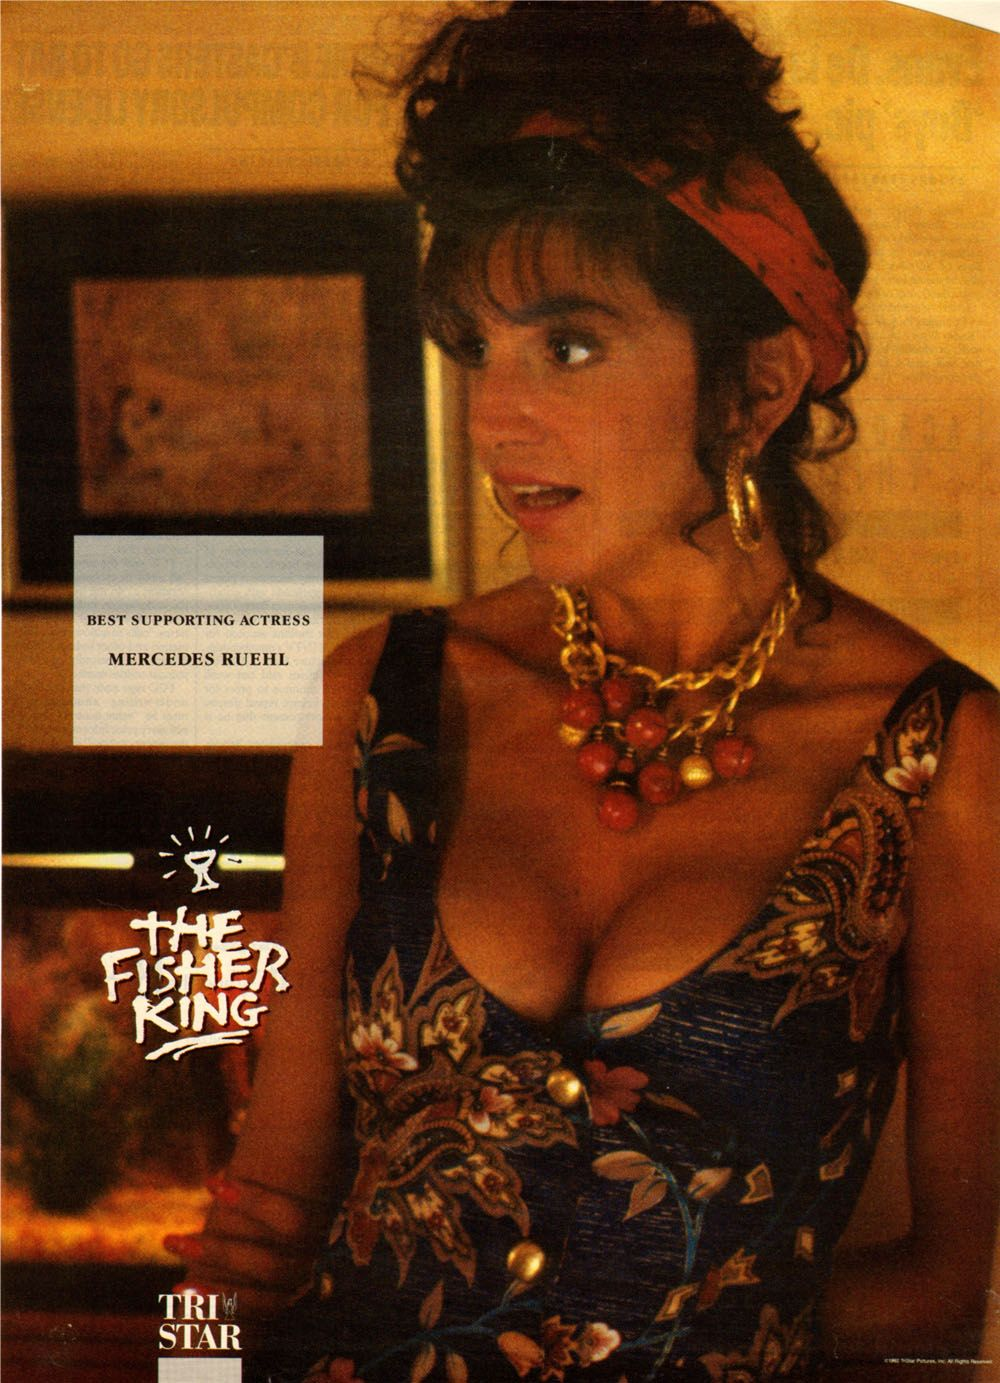 Mercedes Ruehl In The Fisher King 1991 Best Supporting Actress